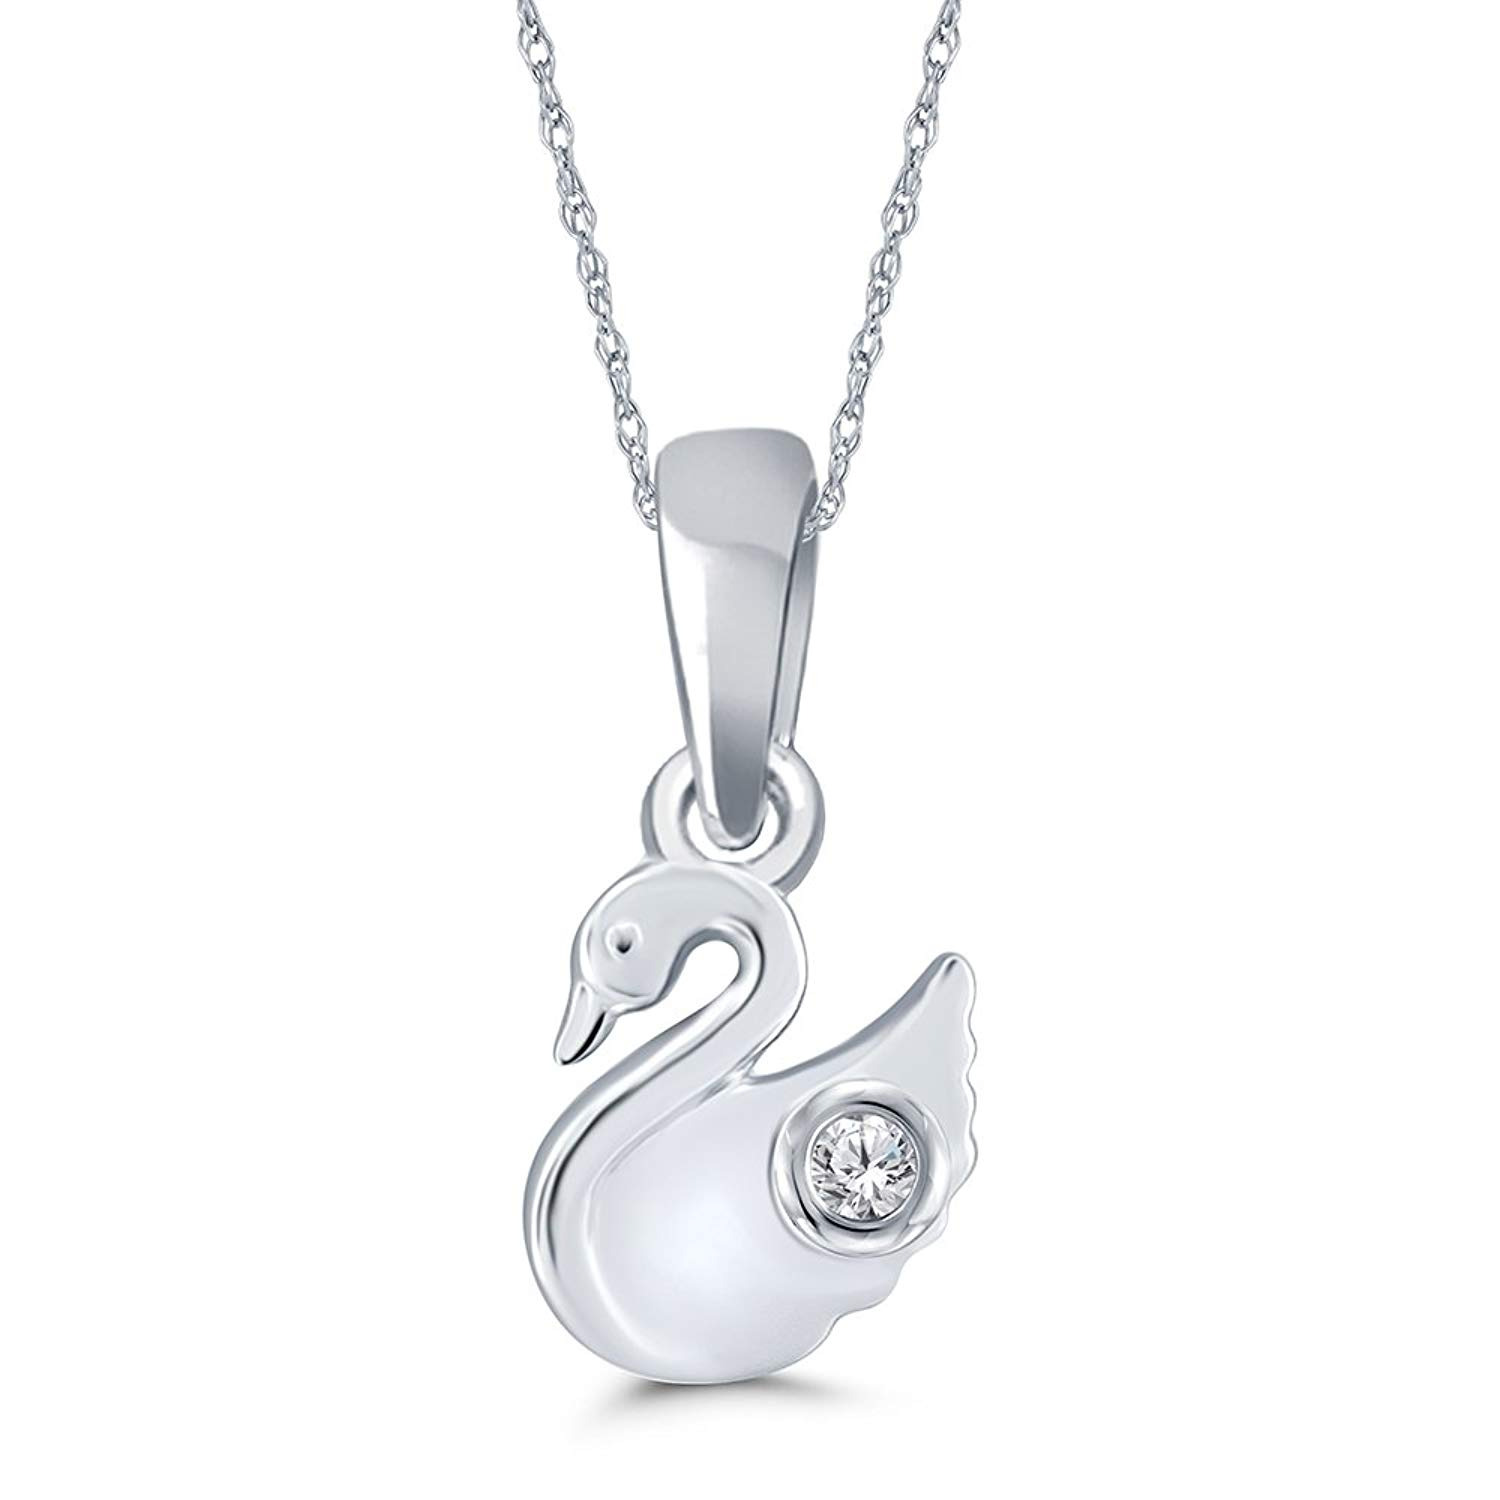 Baby Keepsake Gift Namuri Pendant Baby Imprint Material With Real Diamond